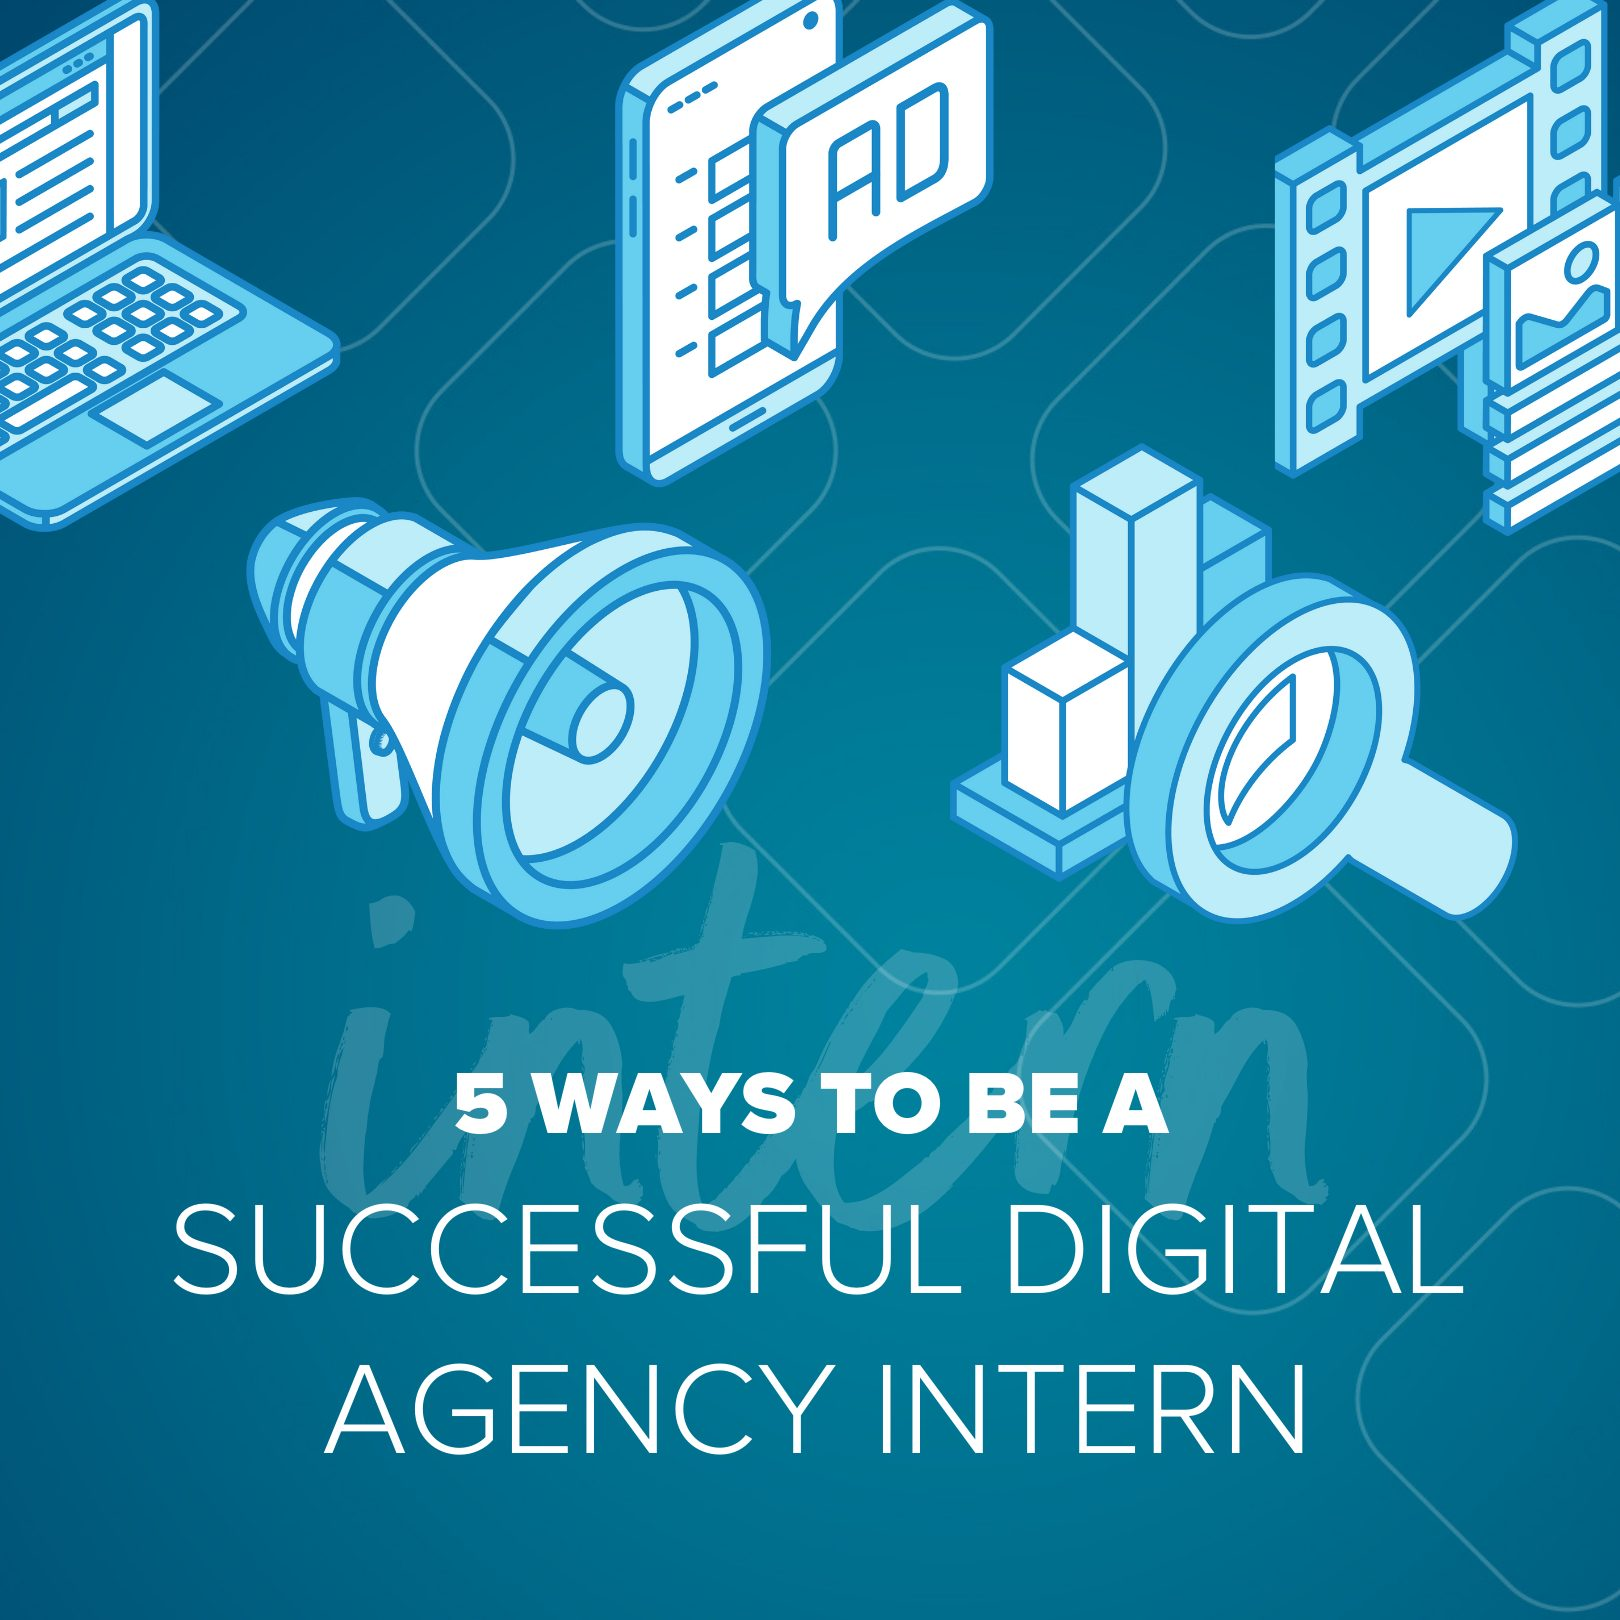 how to be a successful digital agency intern